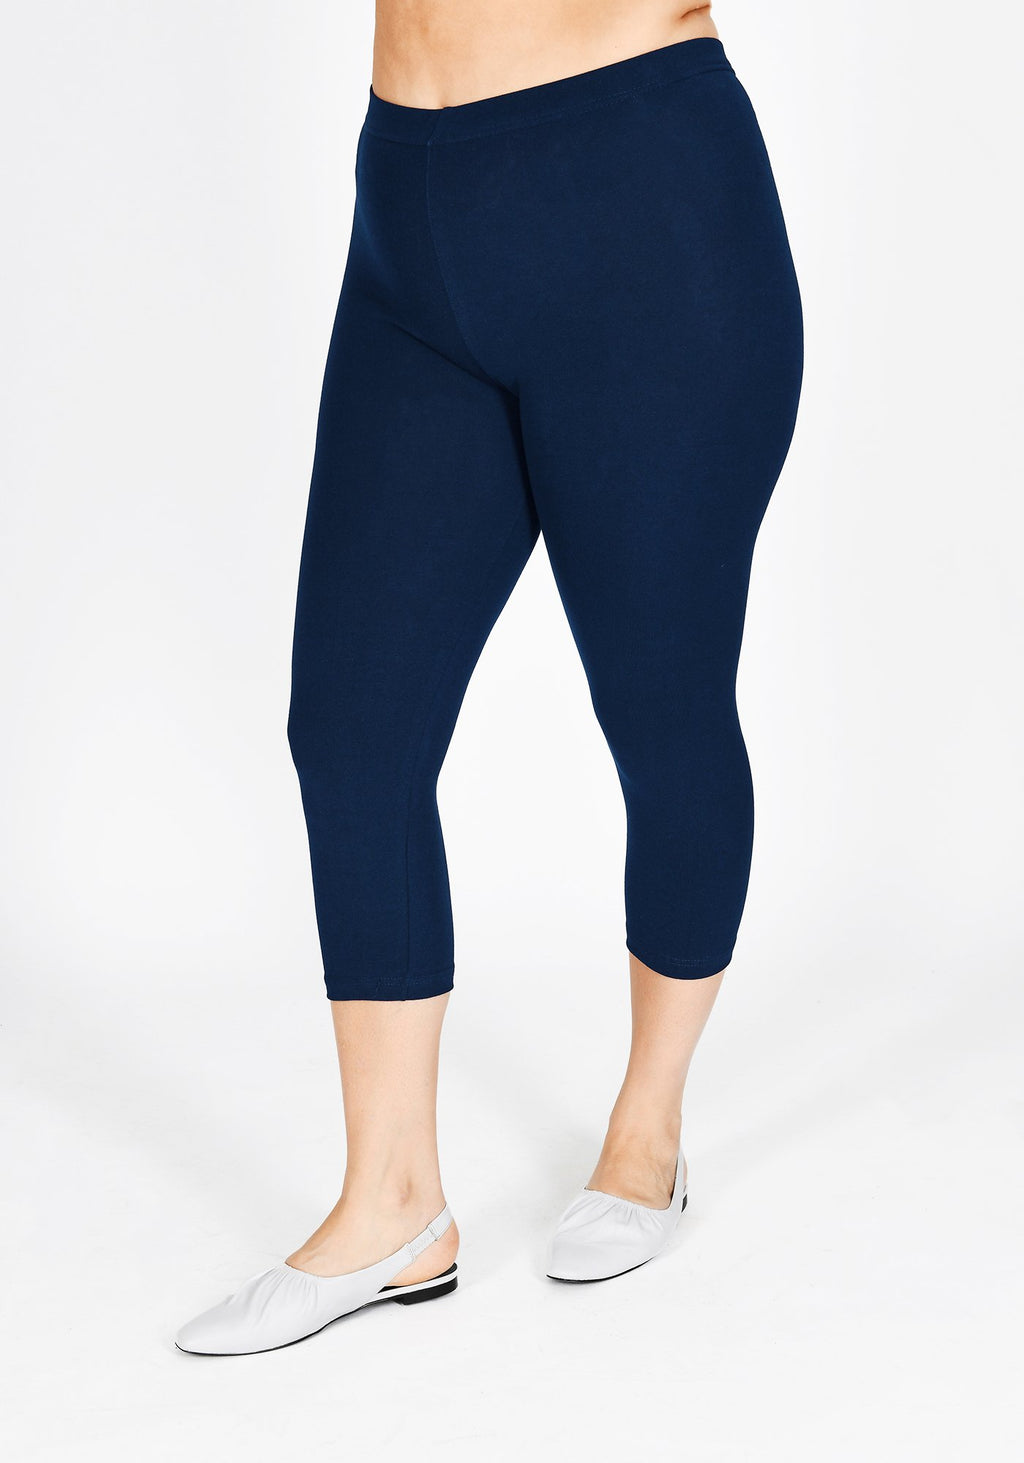 Plus Size Navy Blue Cropped Leggings 1